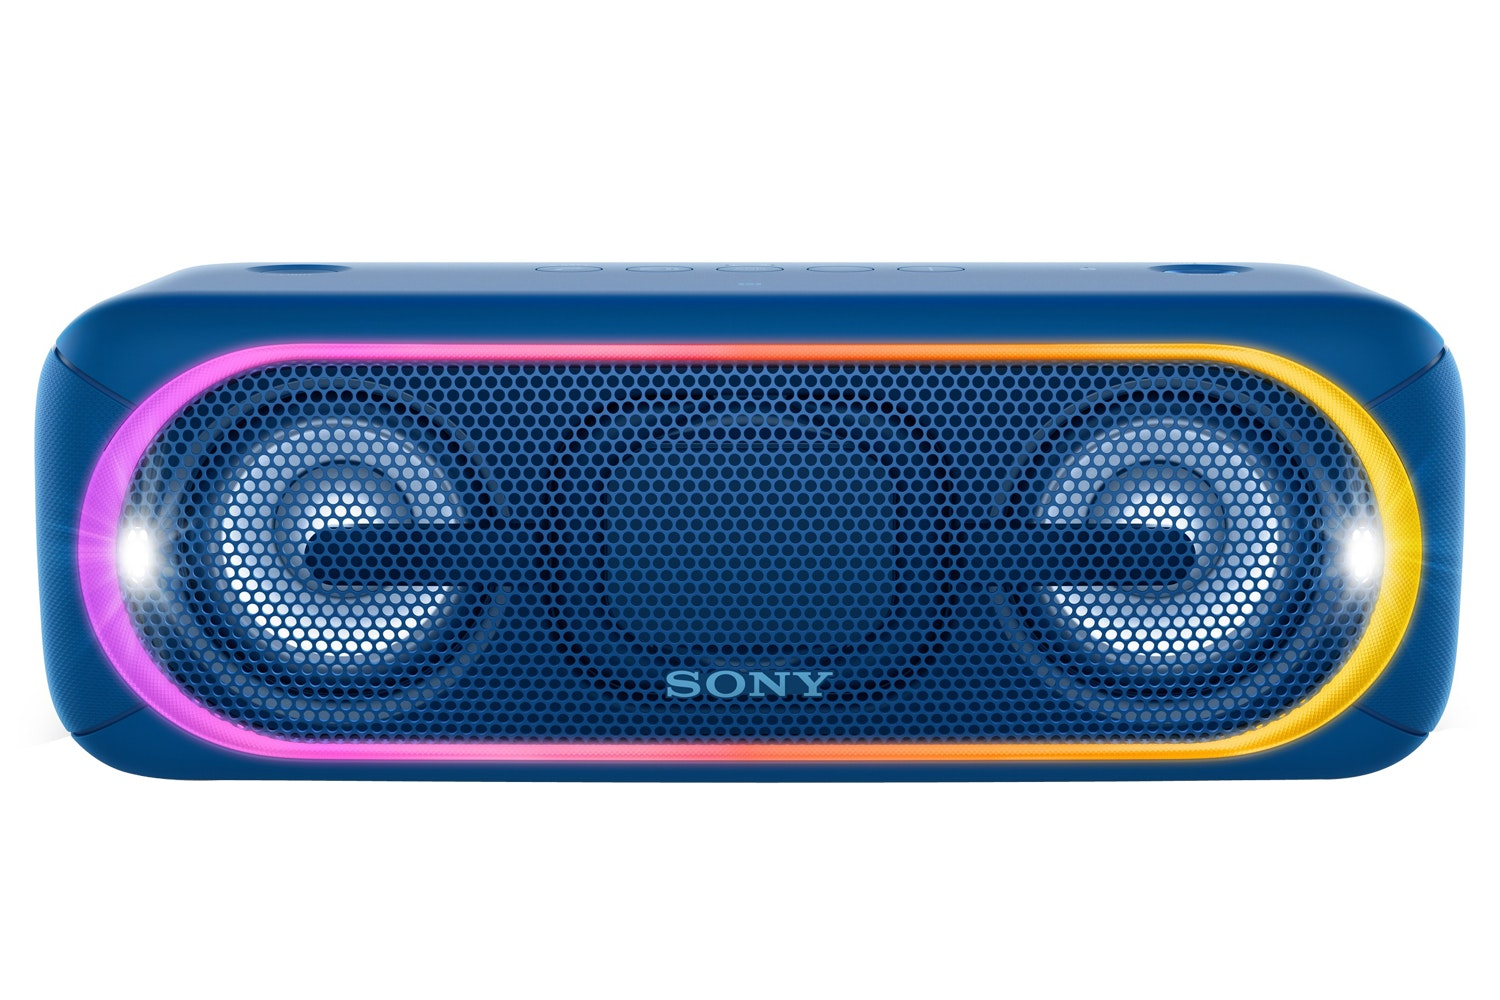 Sony Wireless Speaker | SRSXB40L.EU8